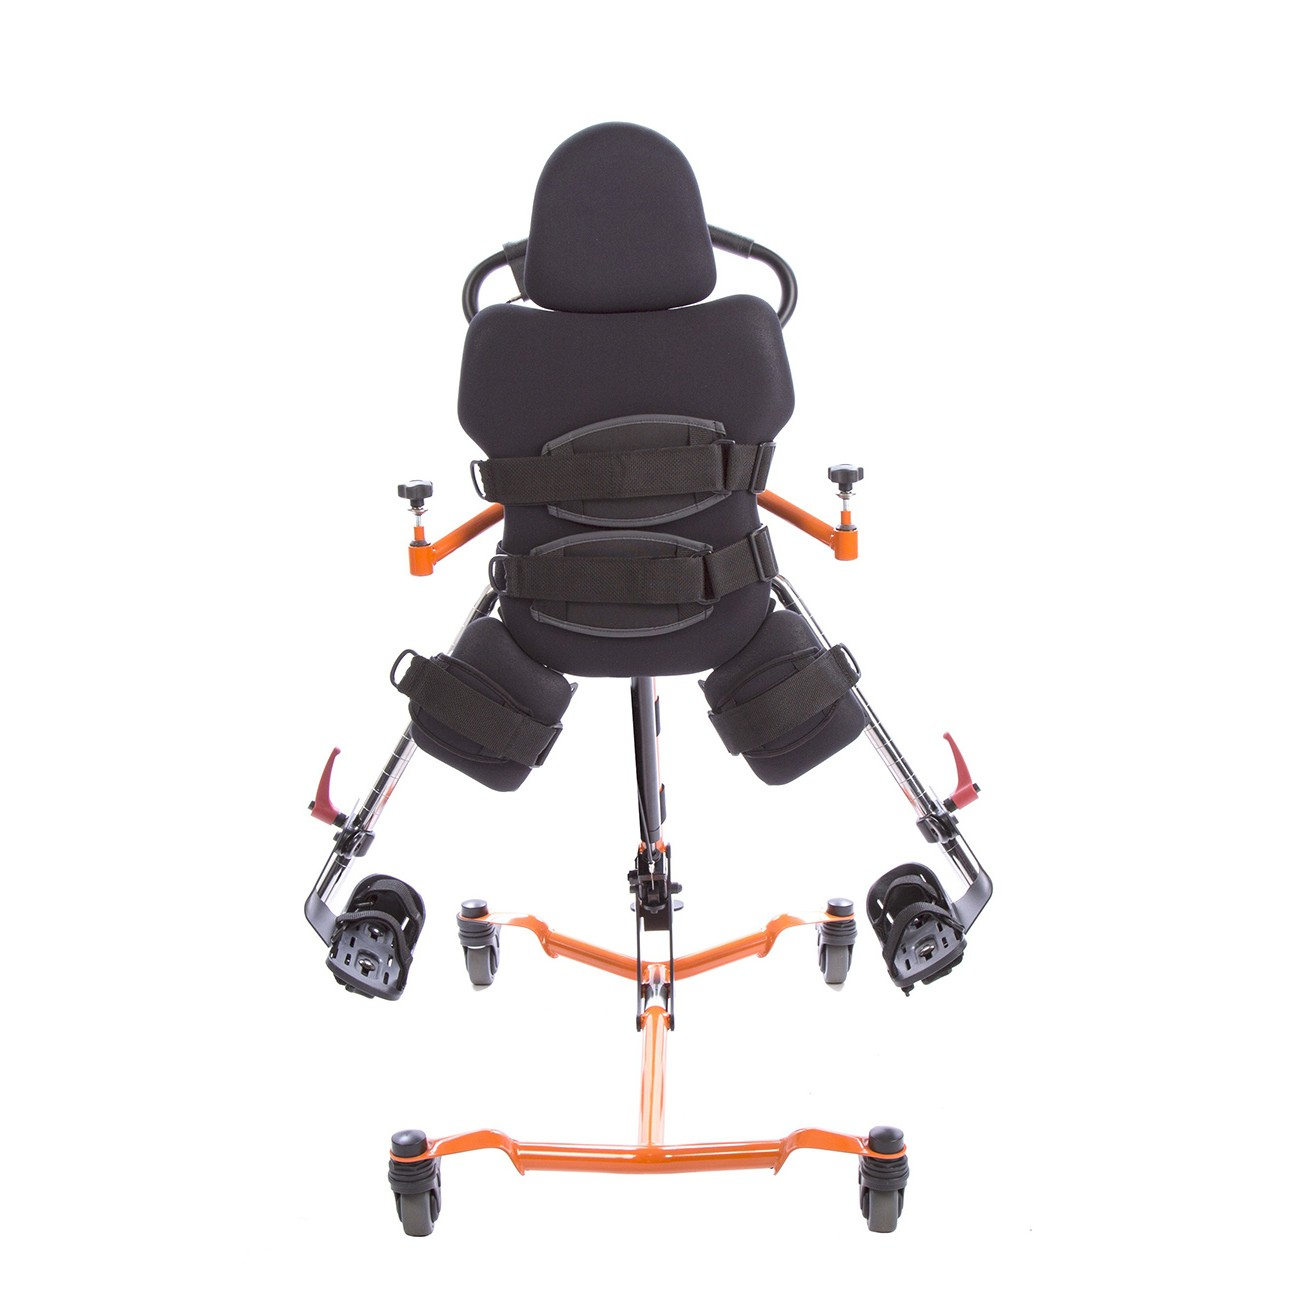 Back view of Orange EasyStand Zing Supine TT Size 1